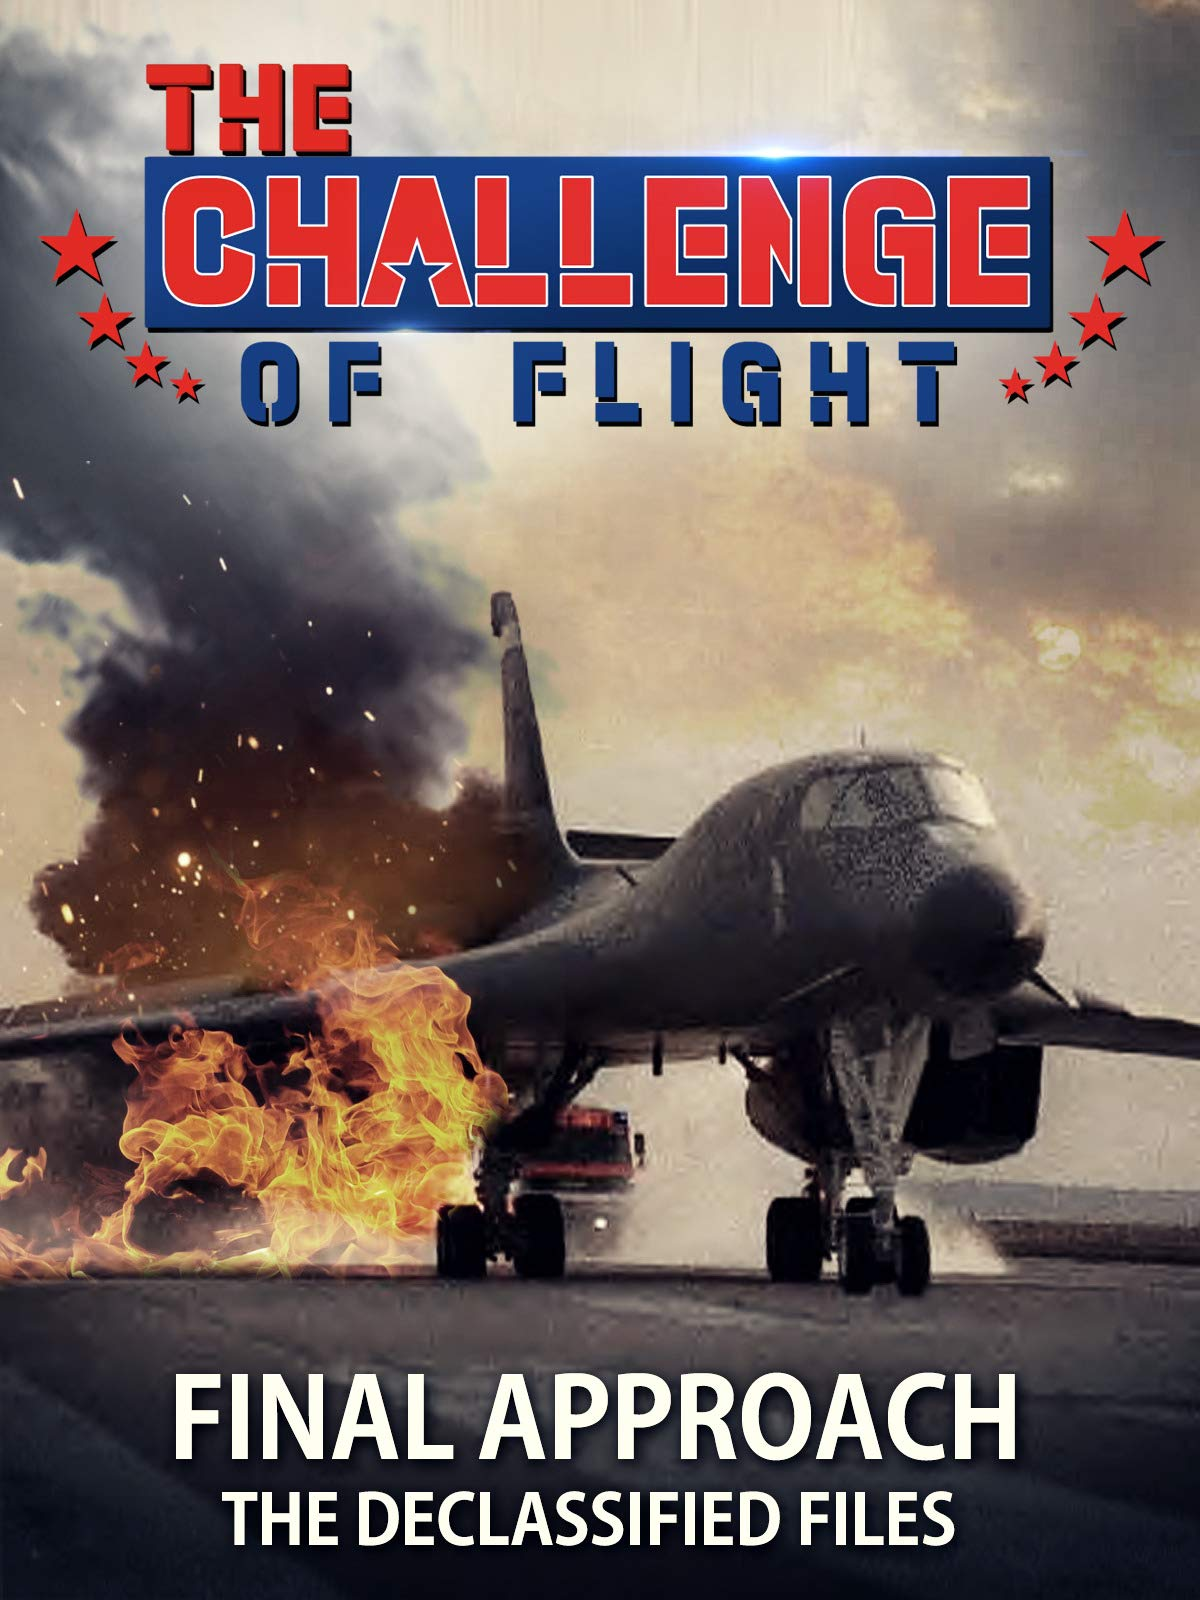 The Challenge of Flight - Final Approach The Declassified Files